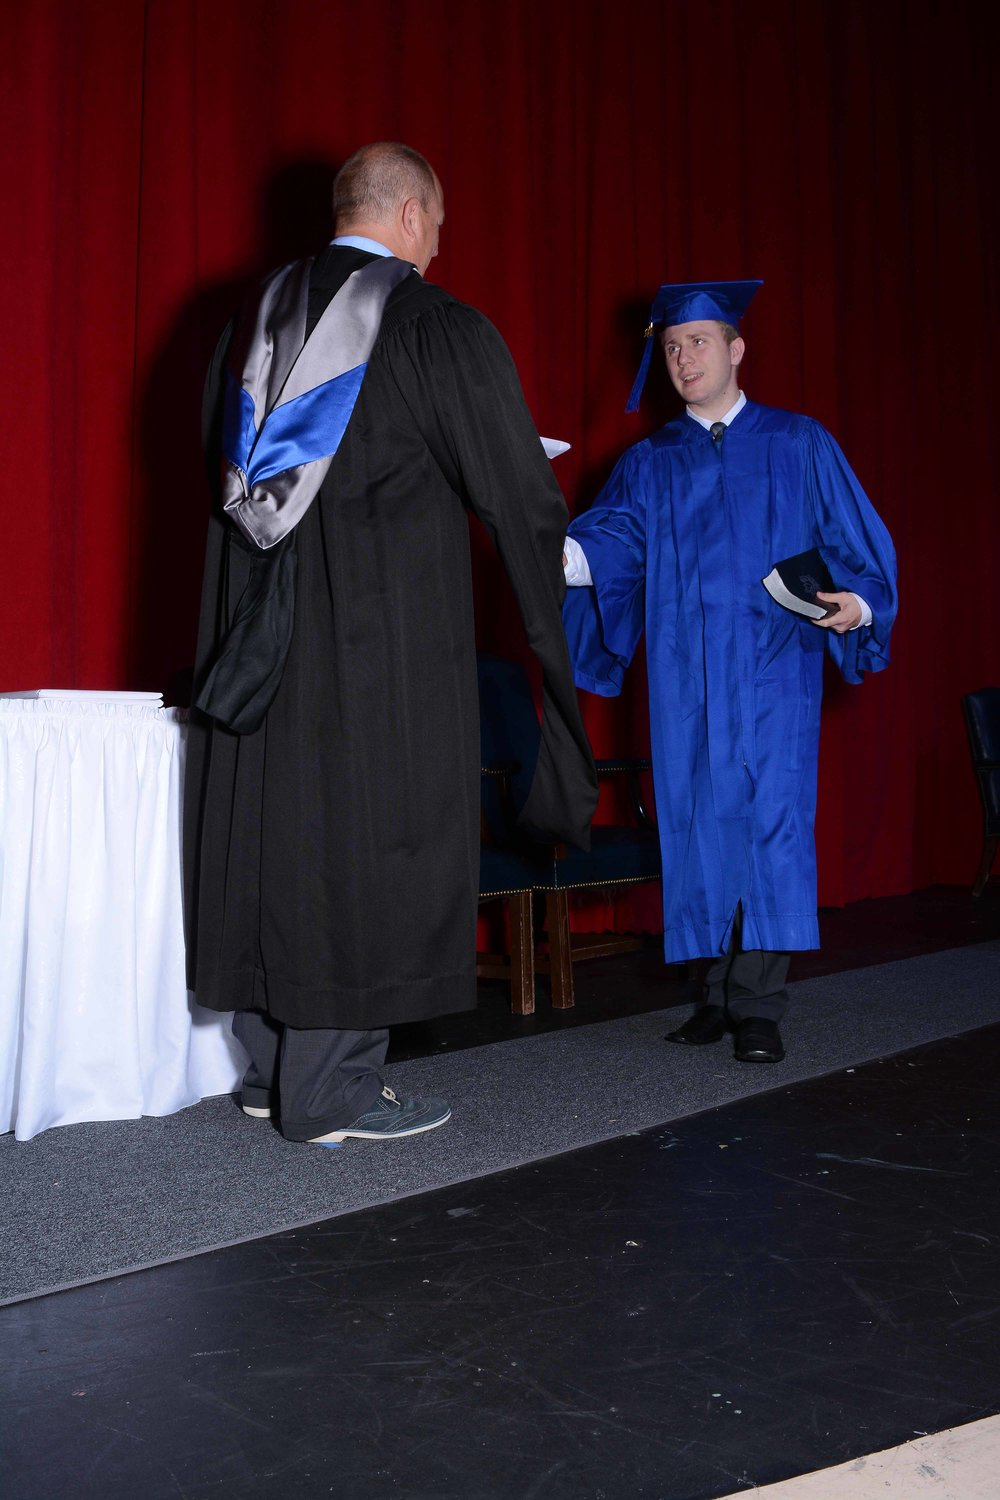 May14 Commencement178.jpg